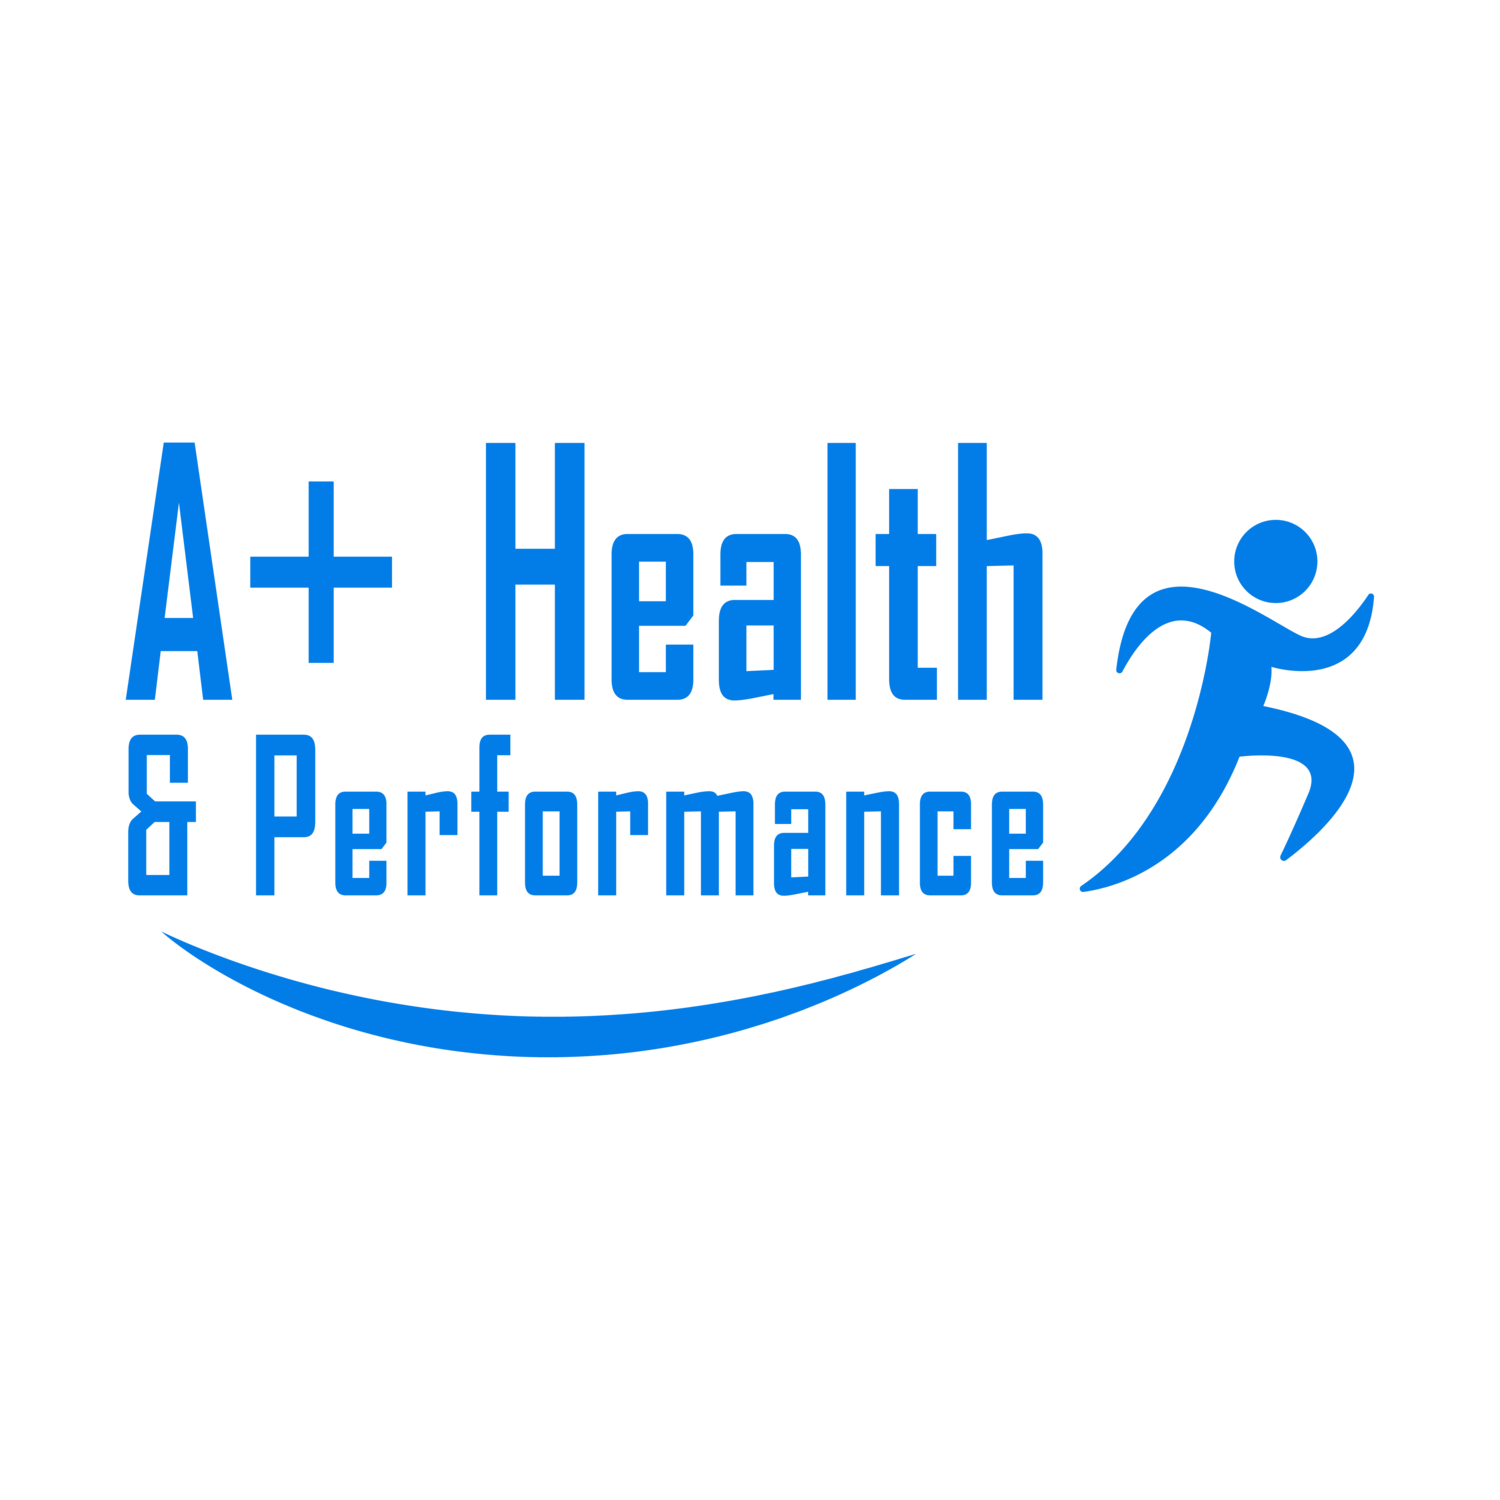 A+ Health and Performance